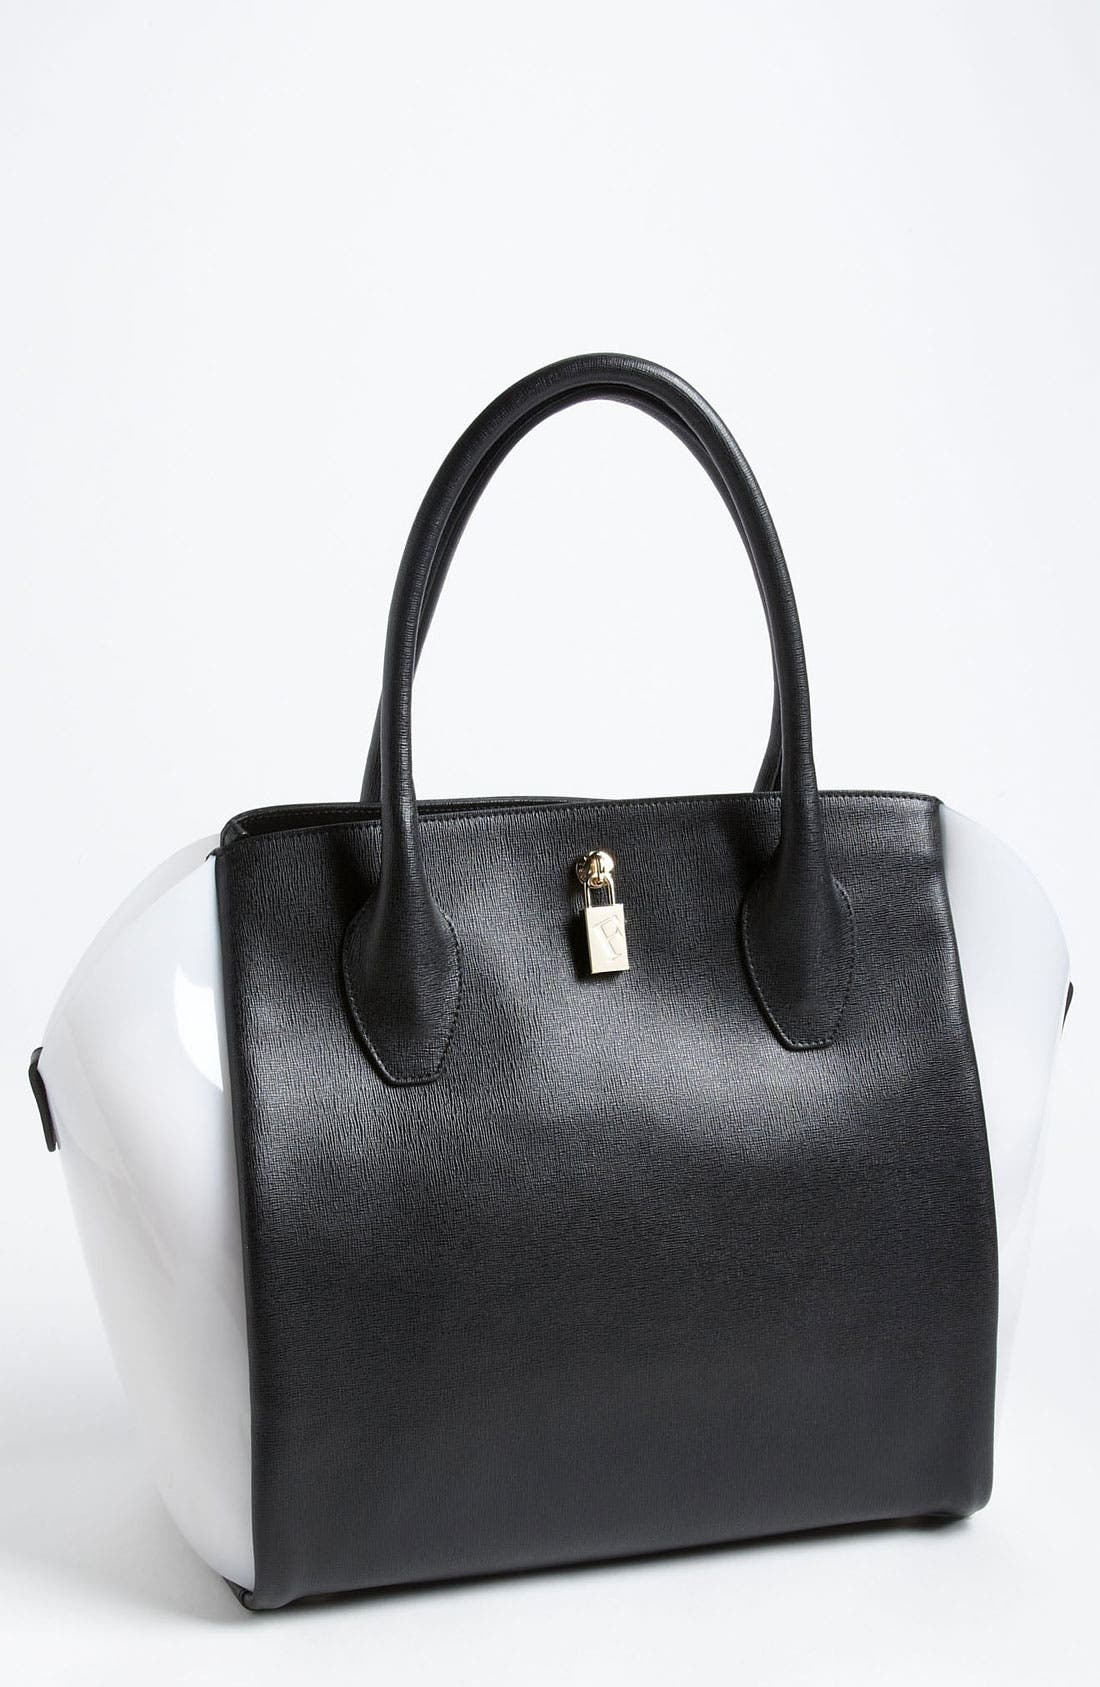 Main Image - Furla 'Olimpia - Medium' Shopper